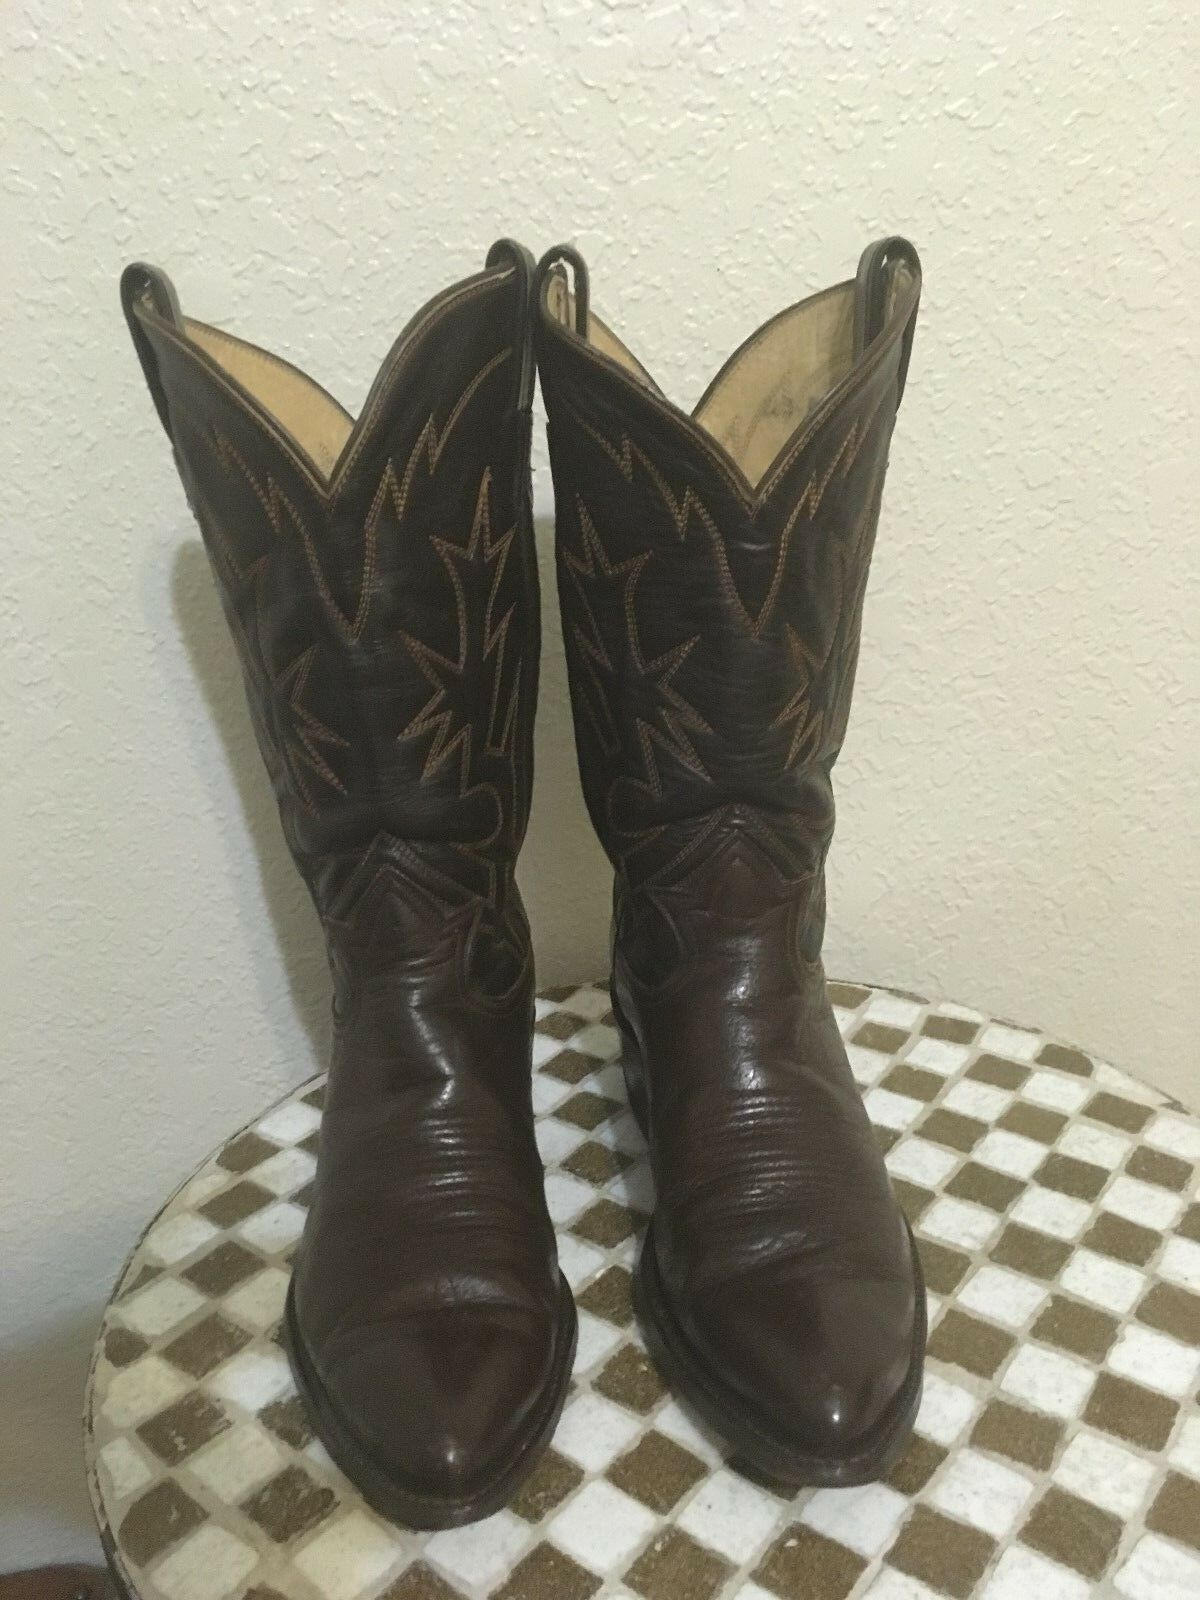 BROWN USA TONY LAMA WESTERN TRAIL BOSS COWBOY BOOTS 9.5 D